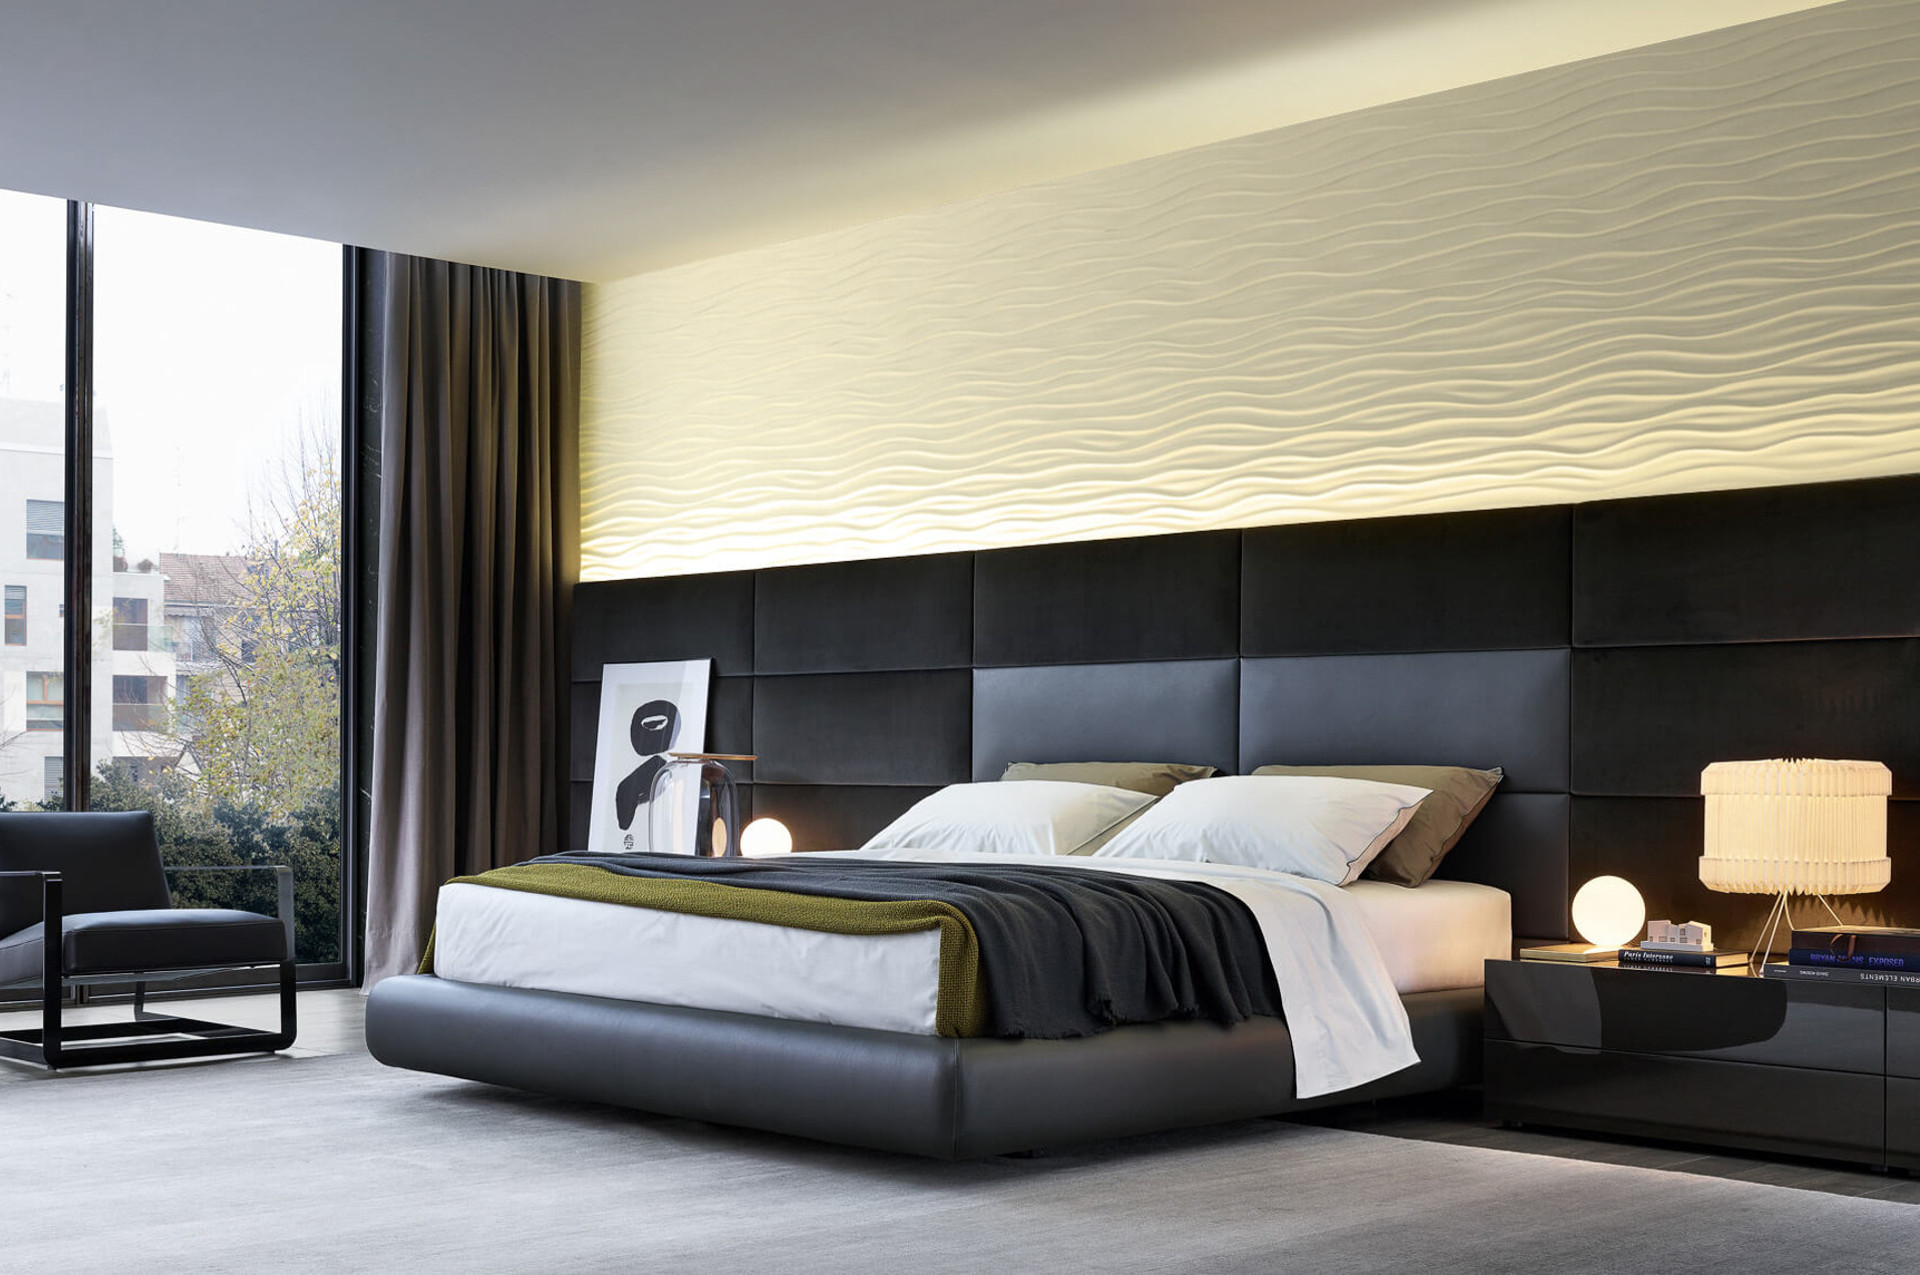 What is the price of 3D wall panels?